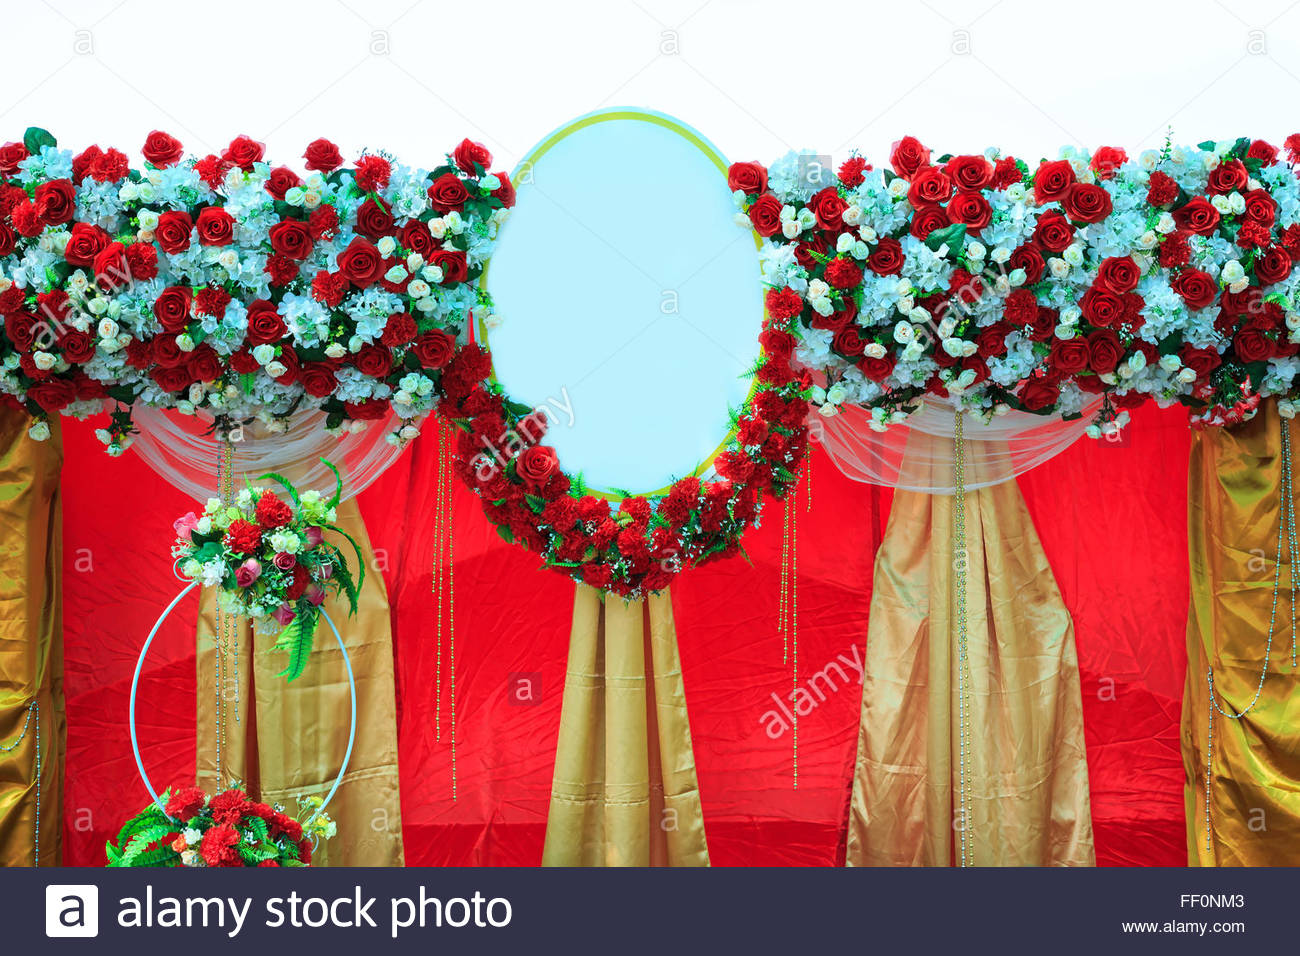 Colorful Backdrop Flowers With White And Gold Red Fabric Arrangement